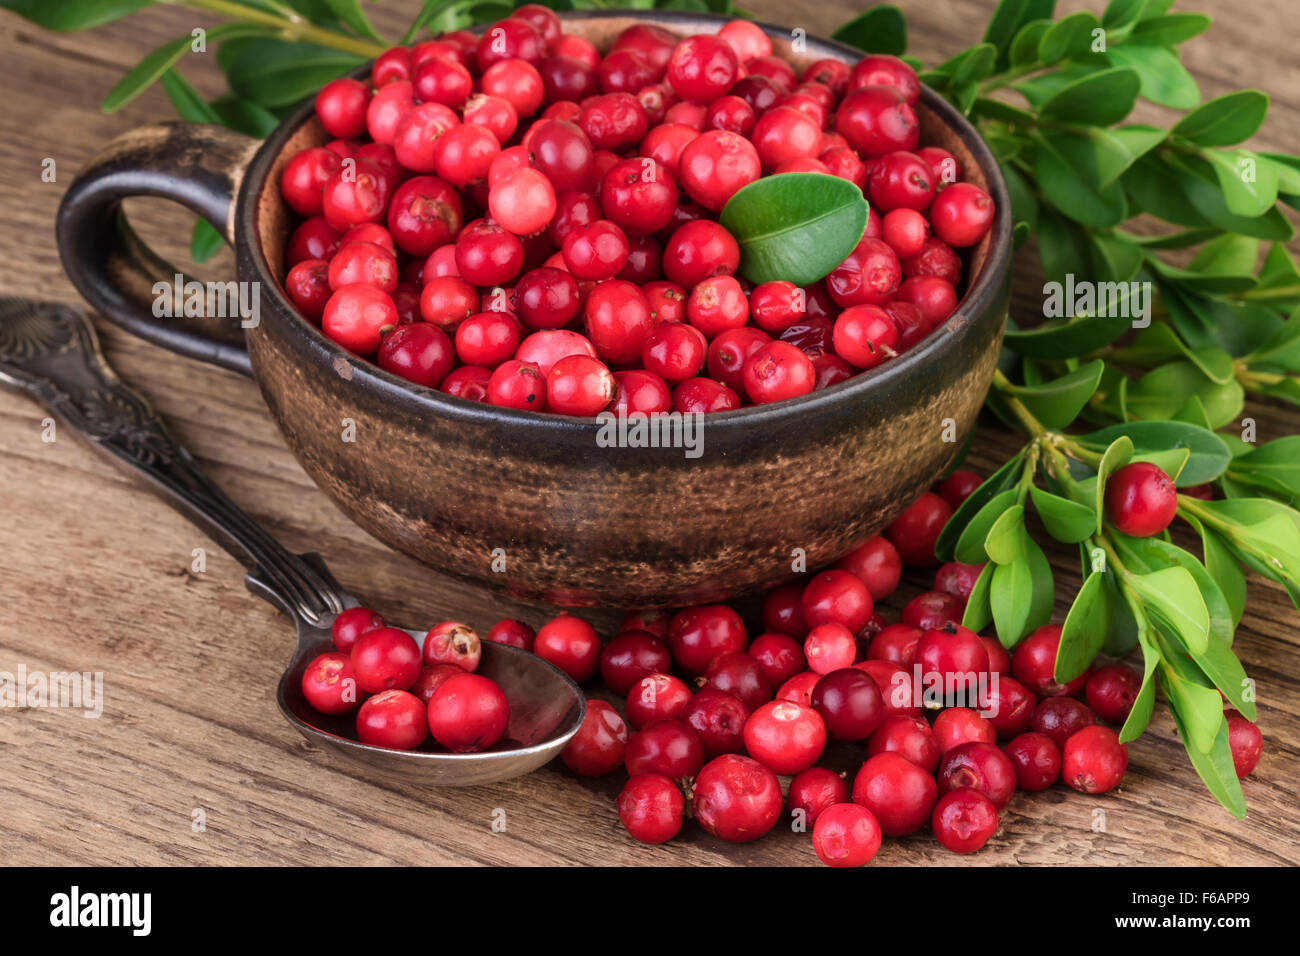 Cranberry Lingonberry - Stock Image